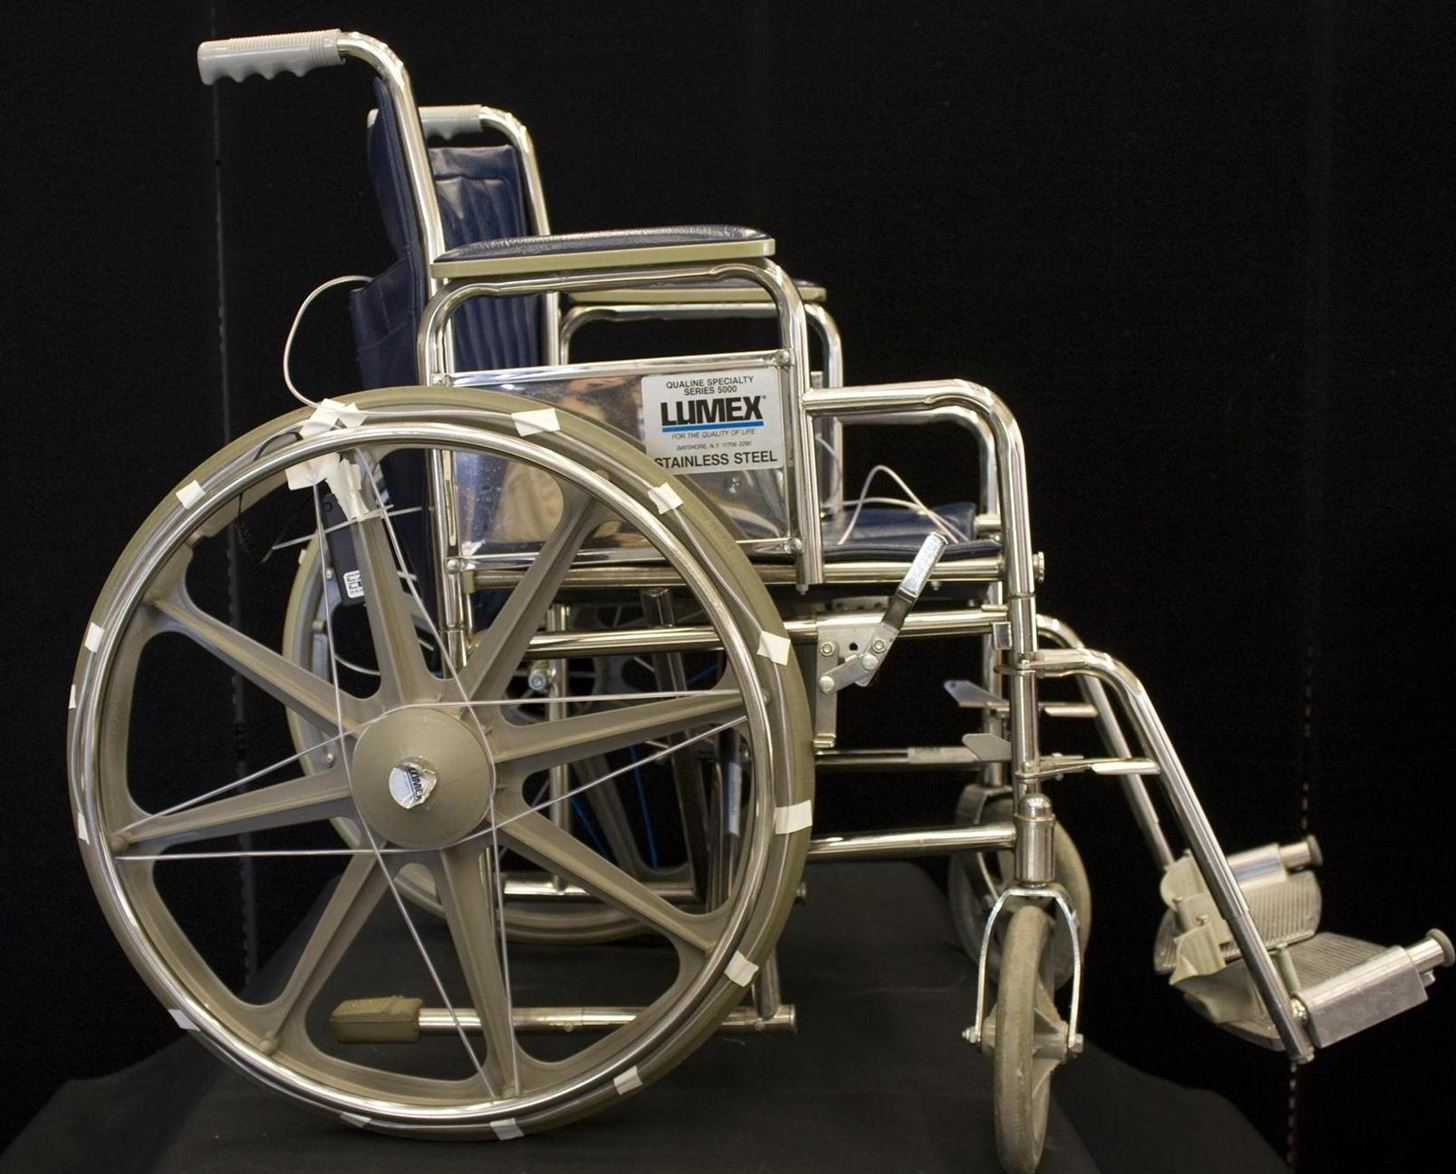 illuminate wheelchair for safety using el wire led strip.w1456?resize=665%2C536&ssl=1 ez lock wheelchair wiring diagram wiring diagram ez lock wheelchair wiring diagram at fashall.co